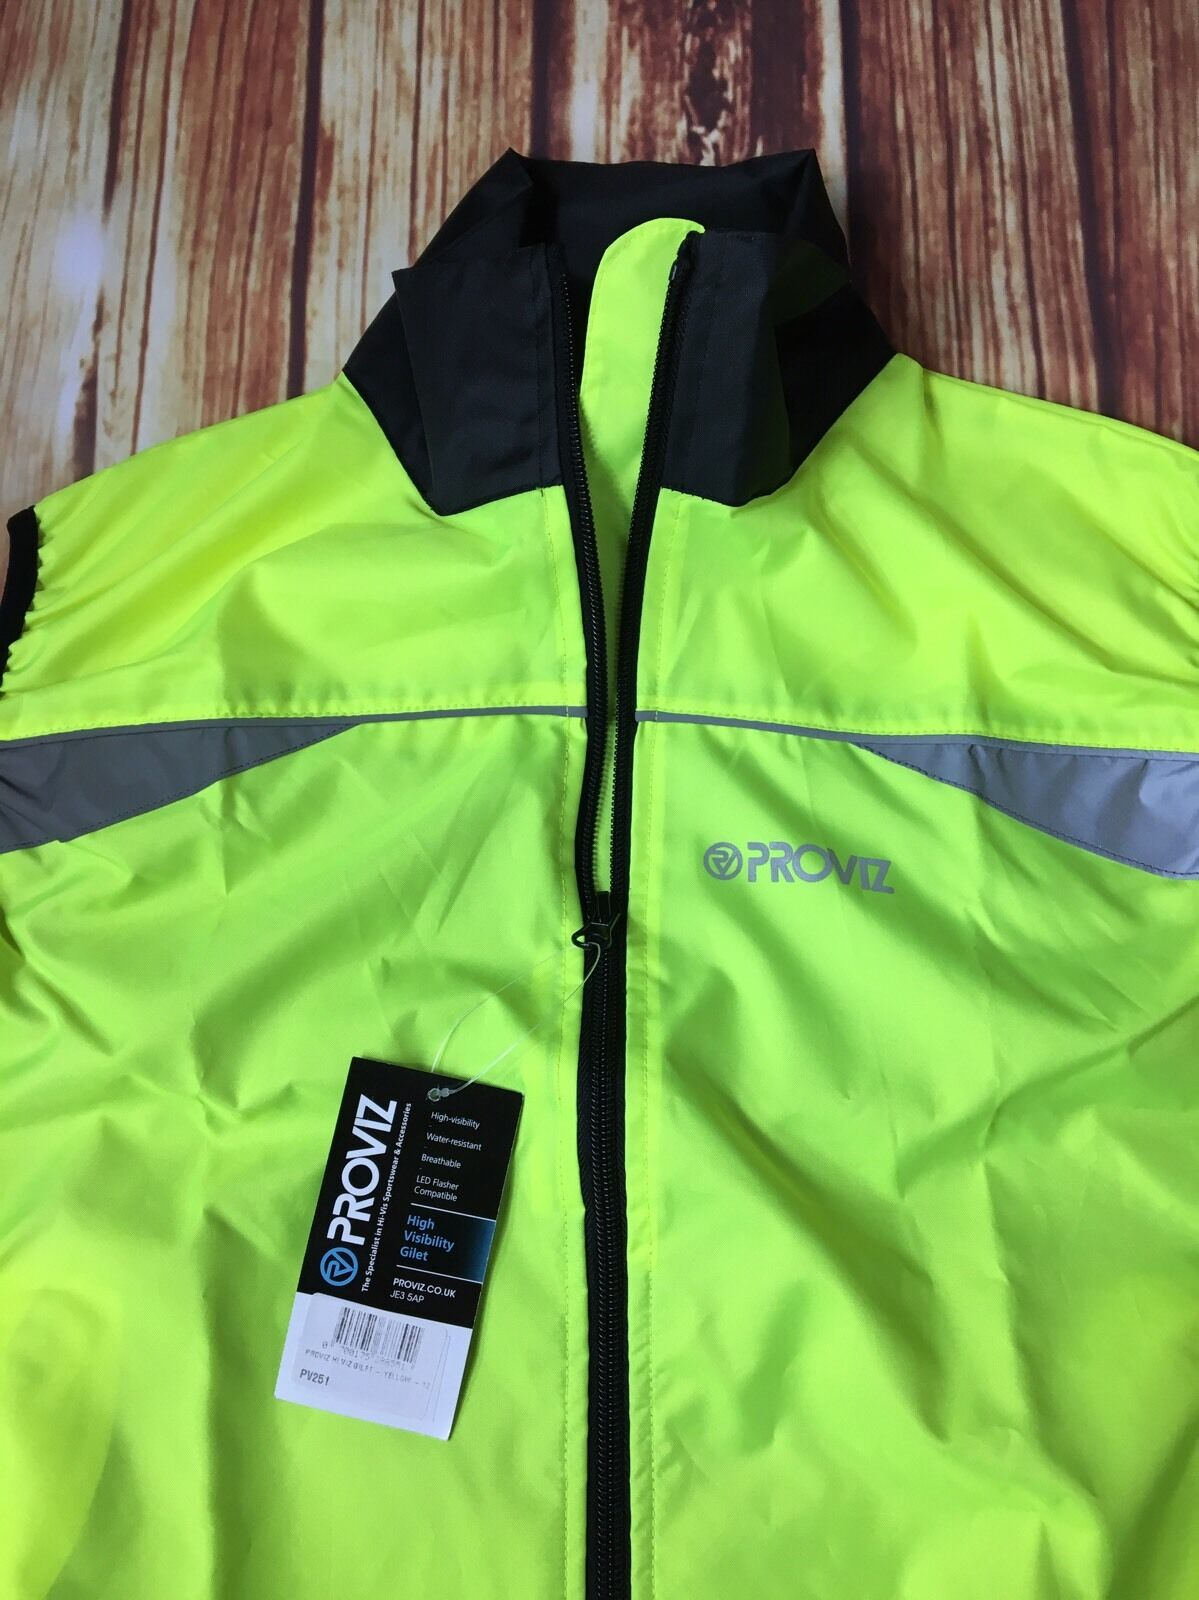 New PROVIZ  Reflect Womens 360  vest Yellow Size 12 with Free Shipping  new w tag  export outlet